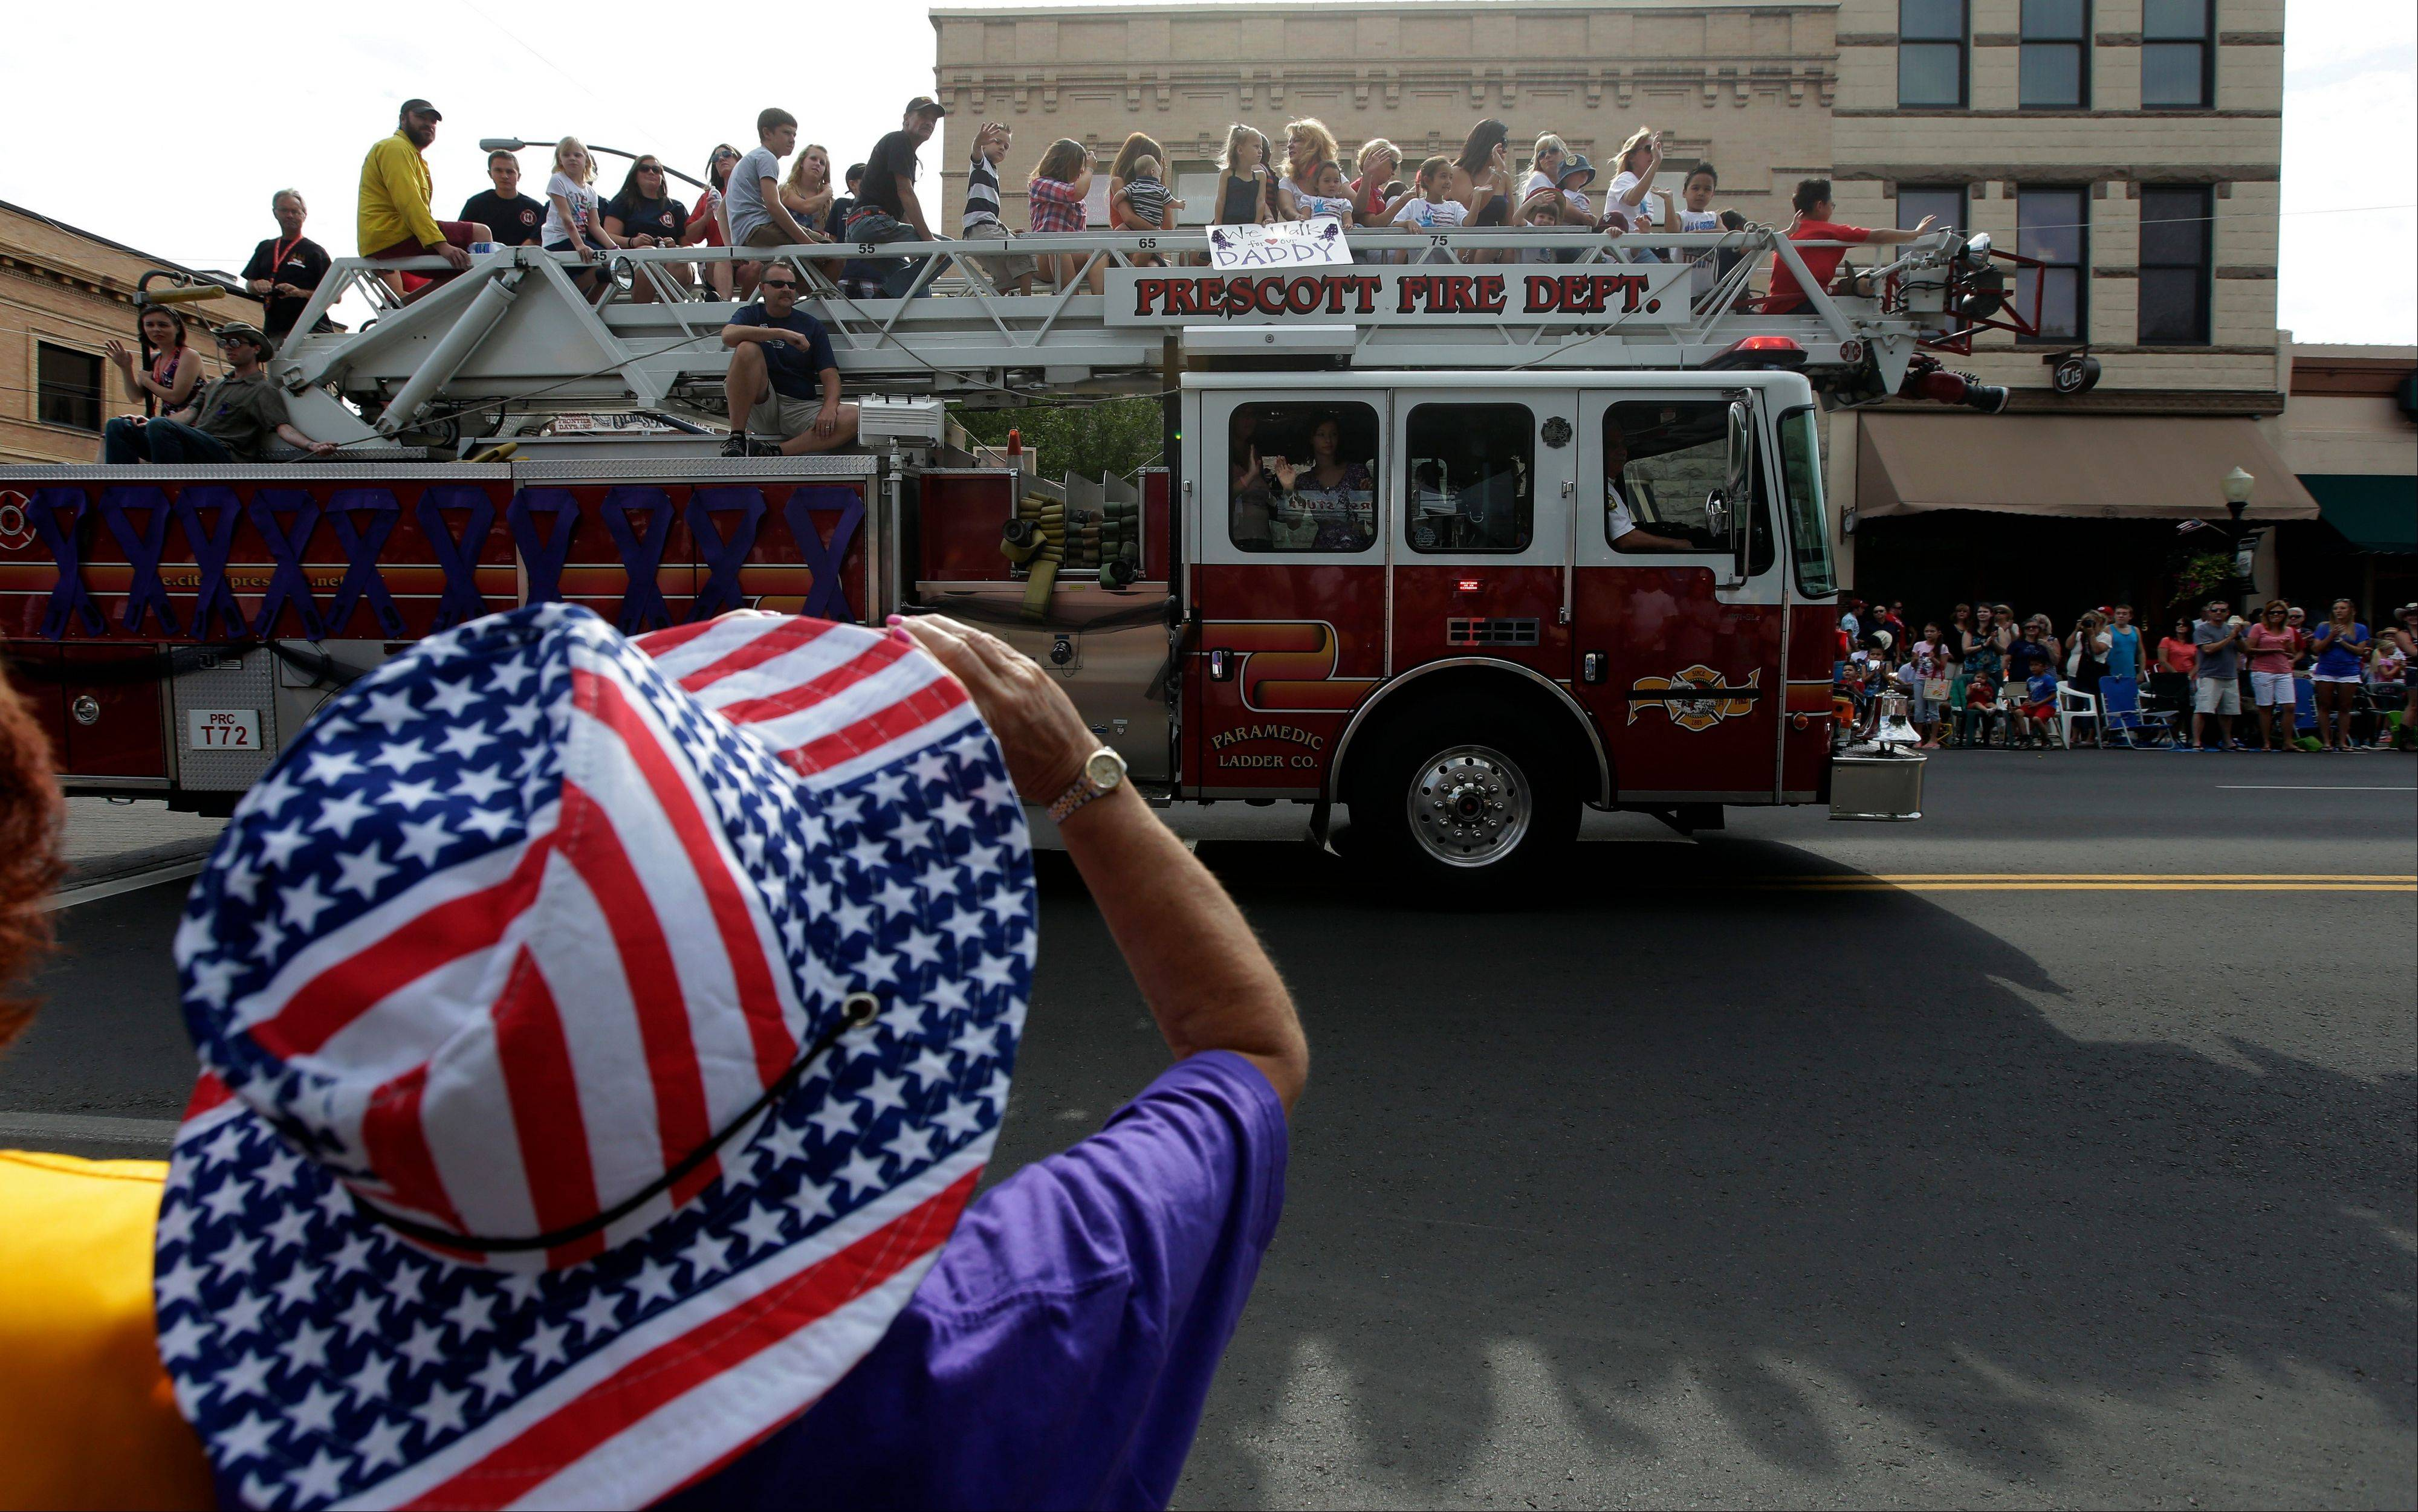 Associated PressA fire truck carrying friends and family members of the Granite Mountain Interagency Hotshot Crew leads the Prescott Frontier Days Rodeo Parade Saturday, July 6, in Prescott, Ariz. The firefighters were killed battling a wildfire near Yarnell, Ariz., Sunday, June 30.